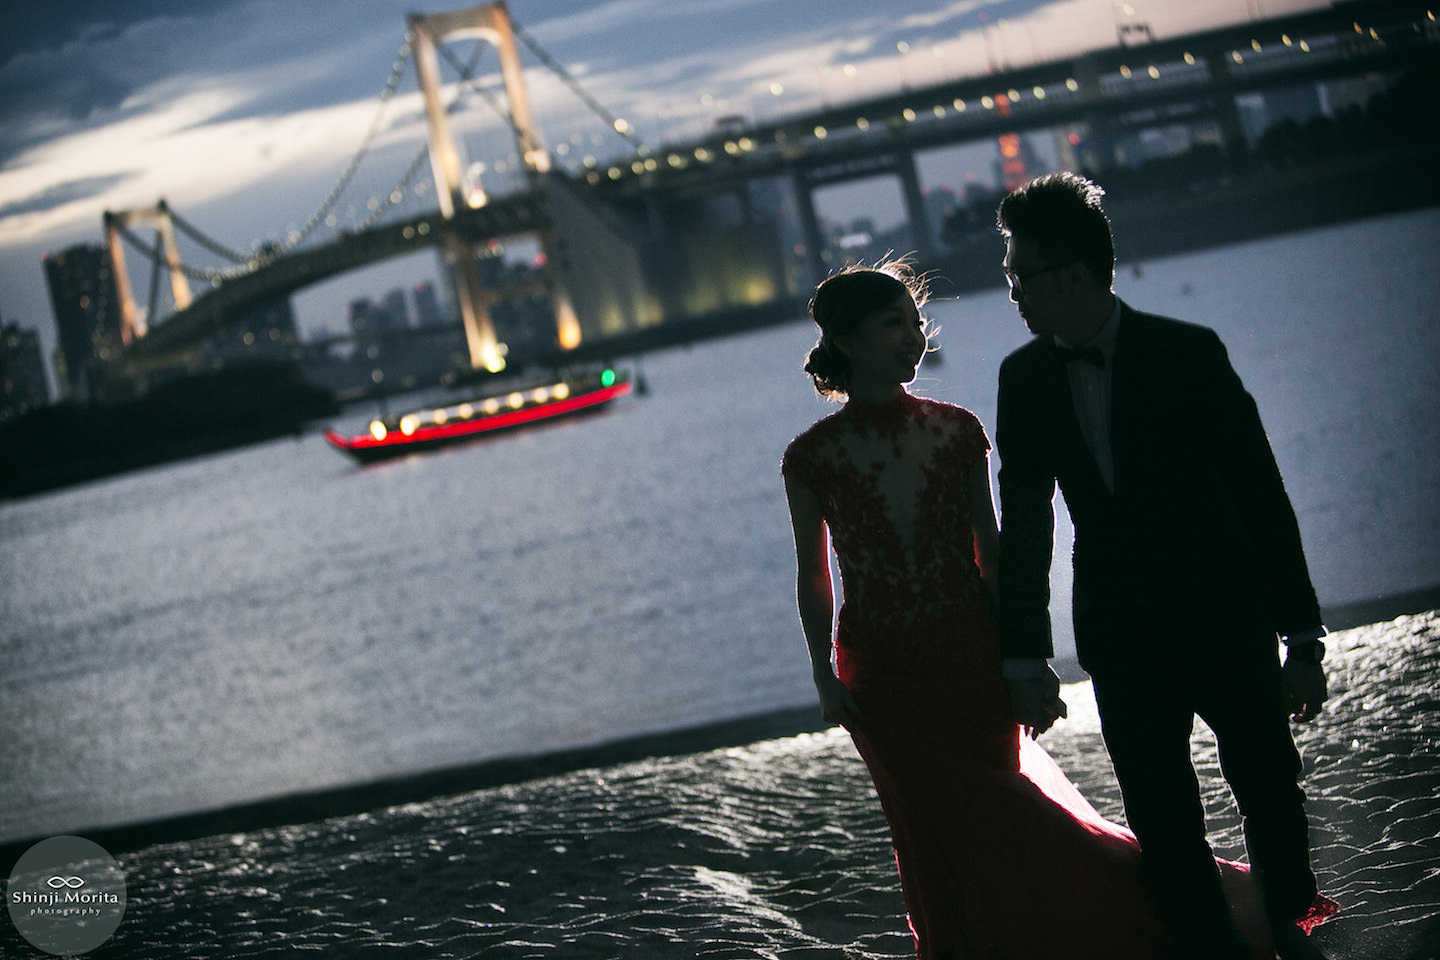 A couple walking along the Odaiba bay area holding hand with woman wearing a beautiful dress